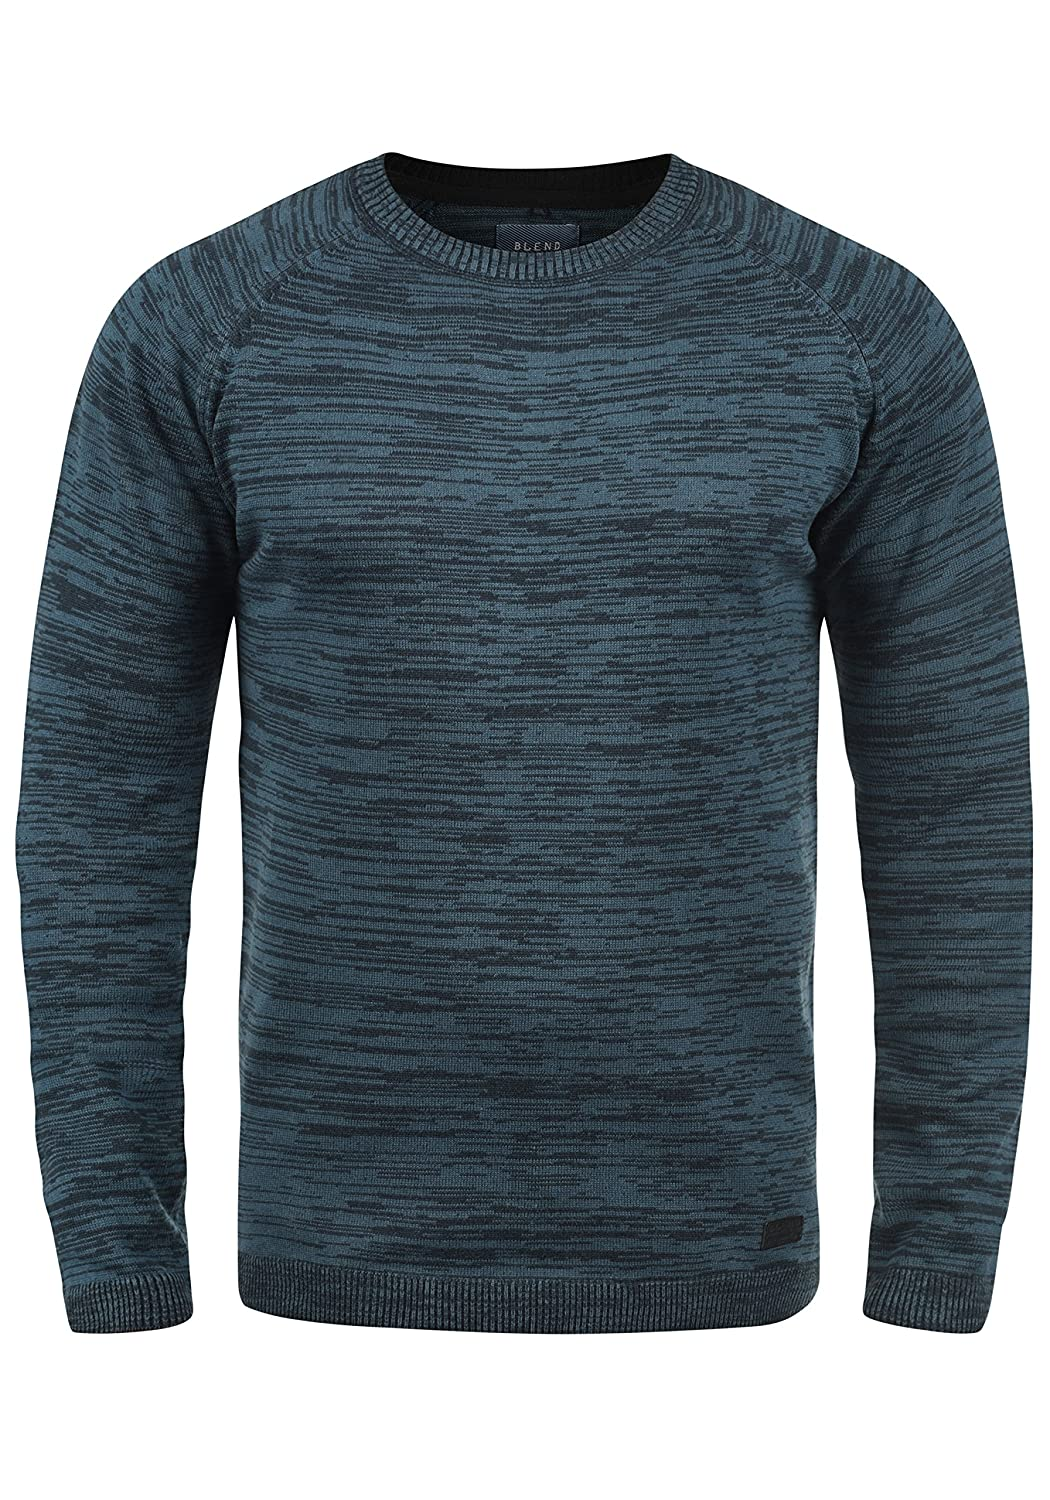 BLEND 20701699ME Men's Knit Pullover Sweater